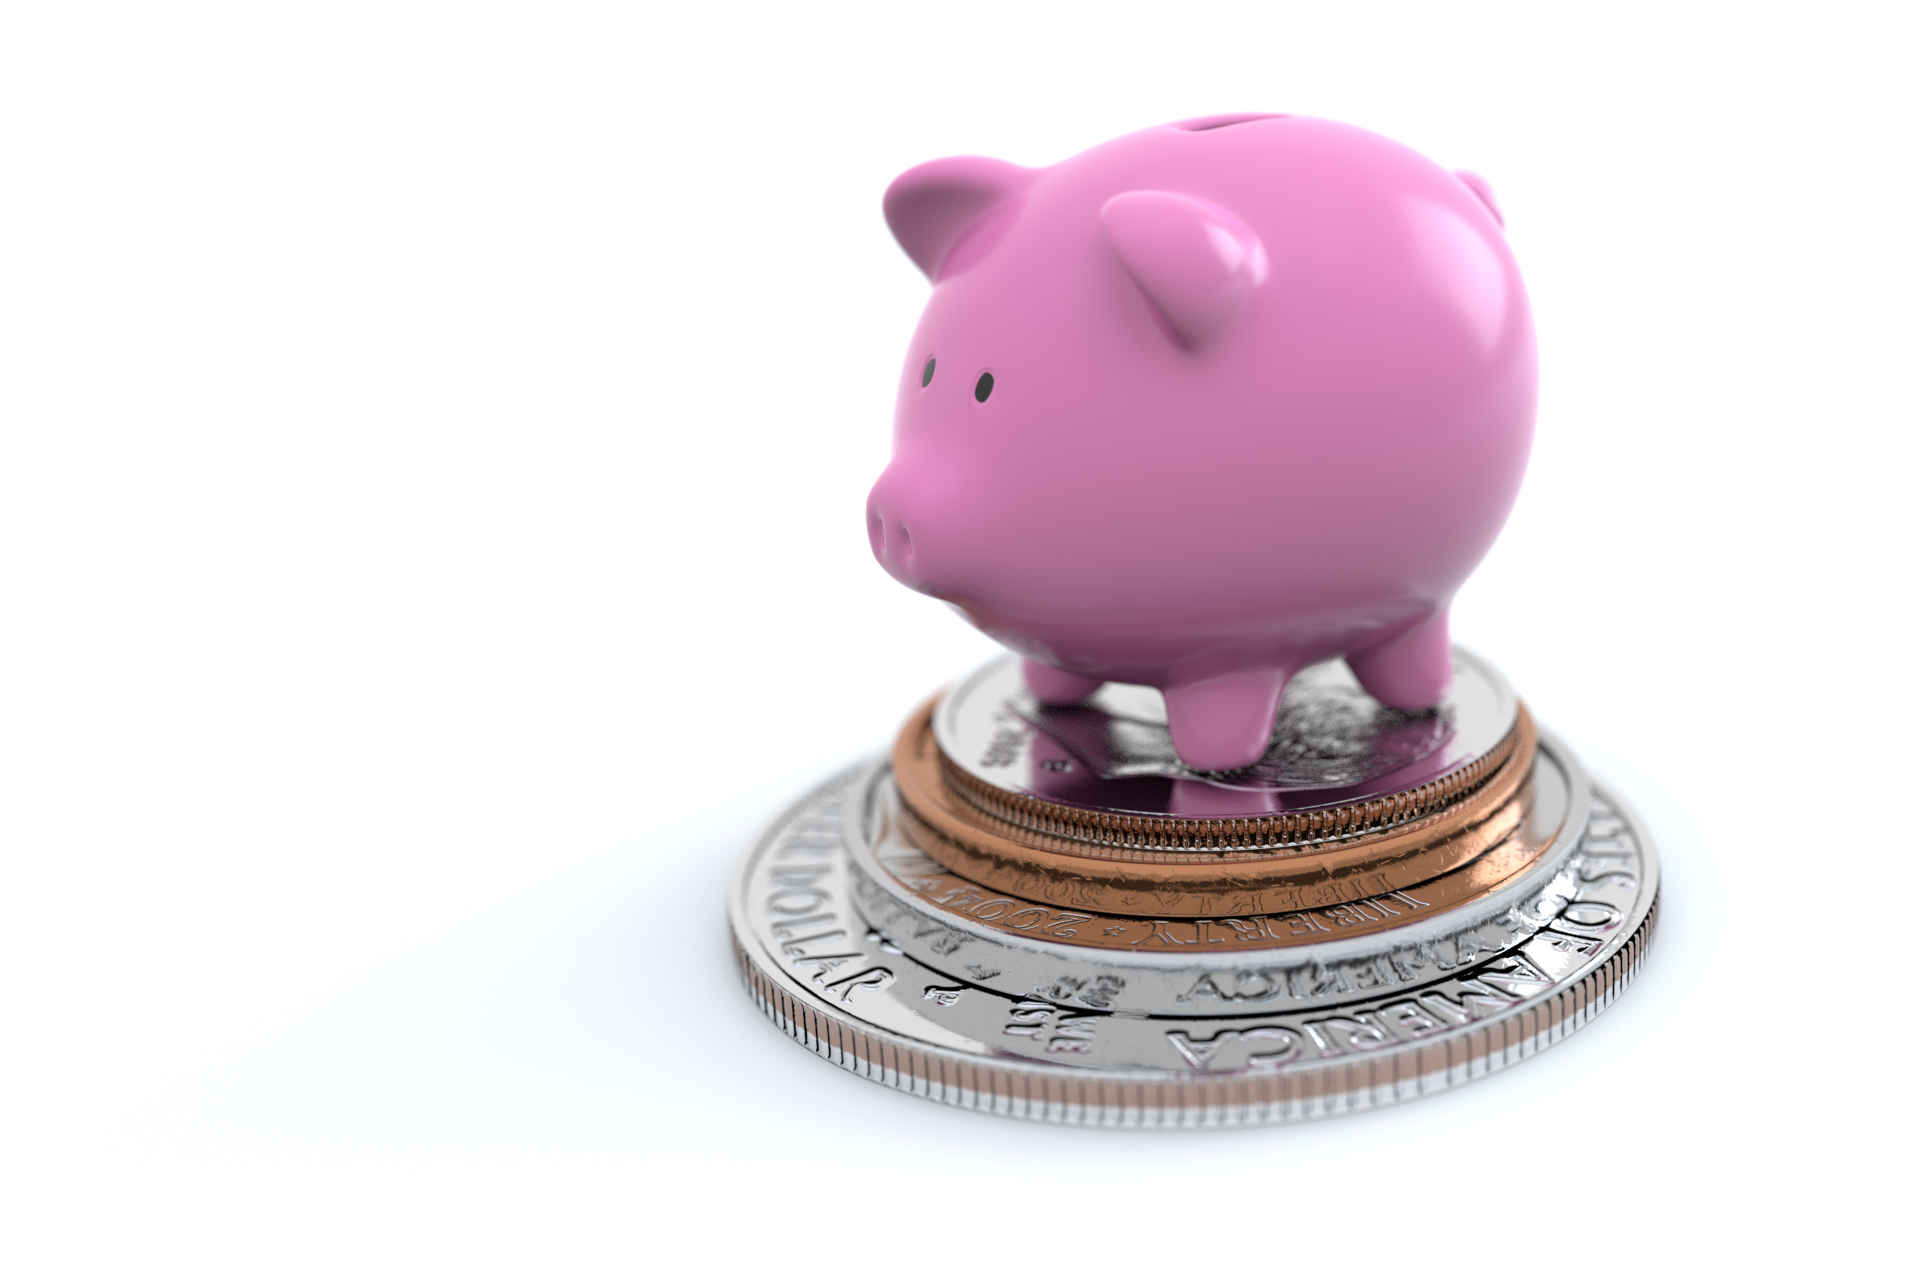 Piggy Bank On Coins Free Image Download